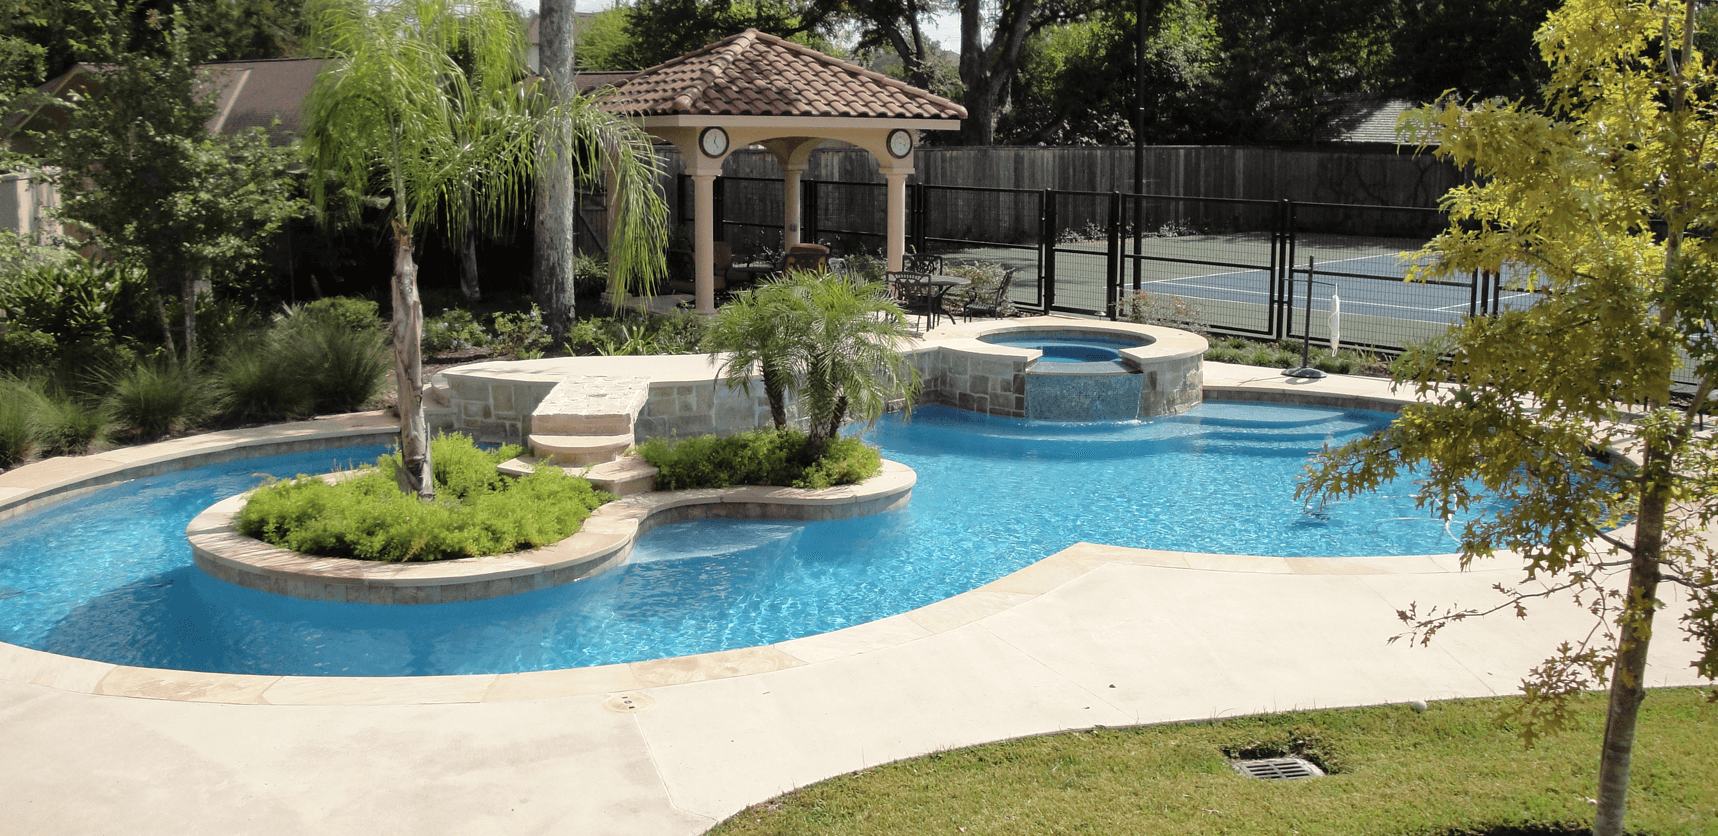 Pool construction houston pool design katy pool service for Pool design katy tx